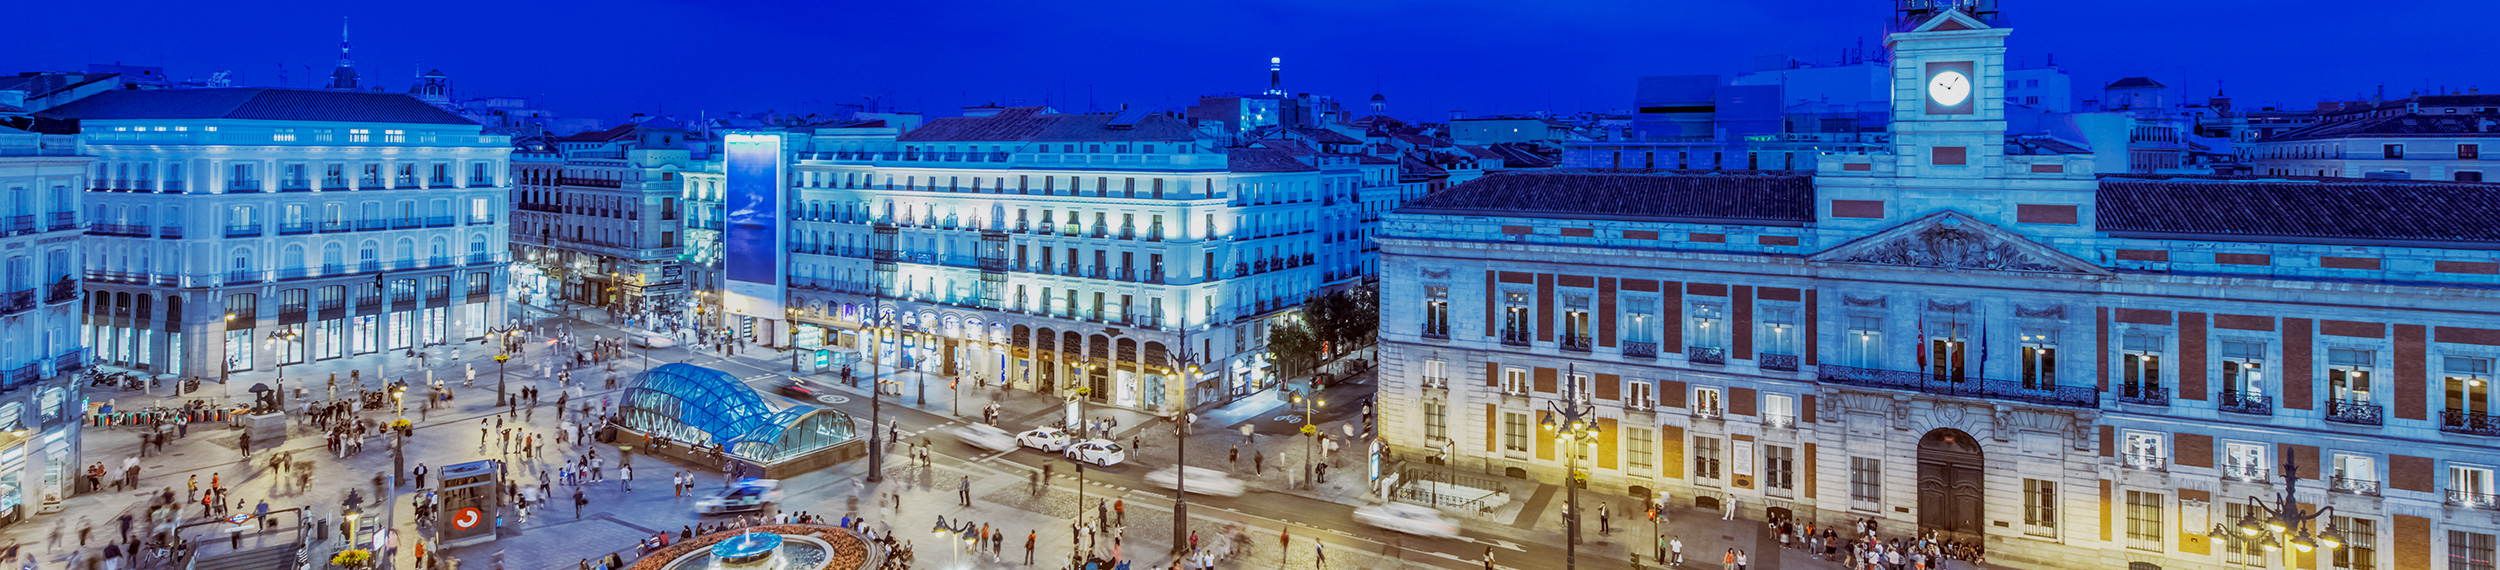 Ornate buildings illuminated at night, Madrid